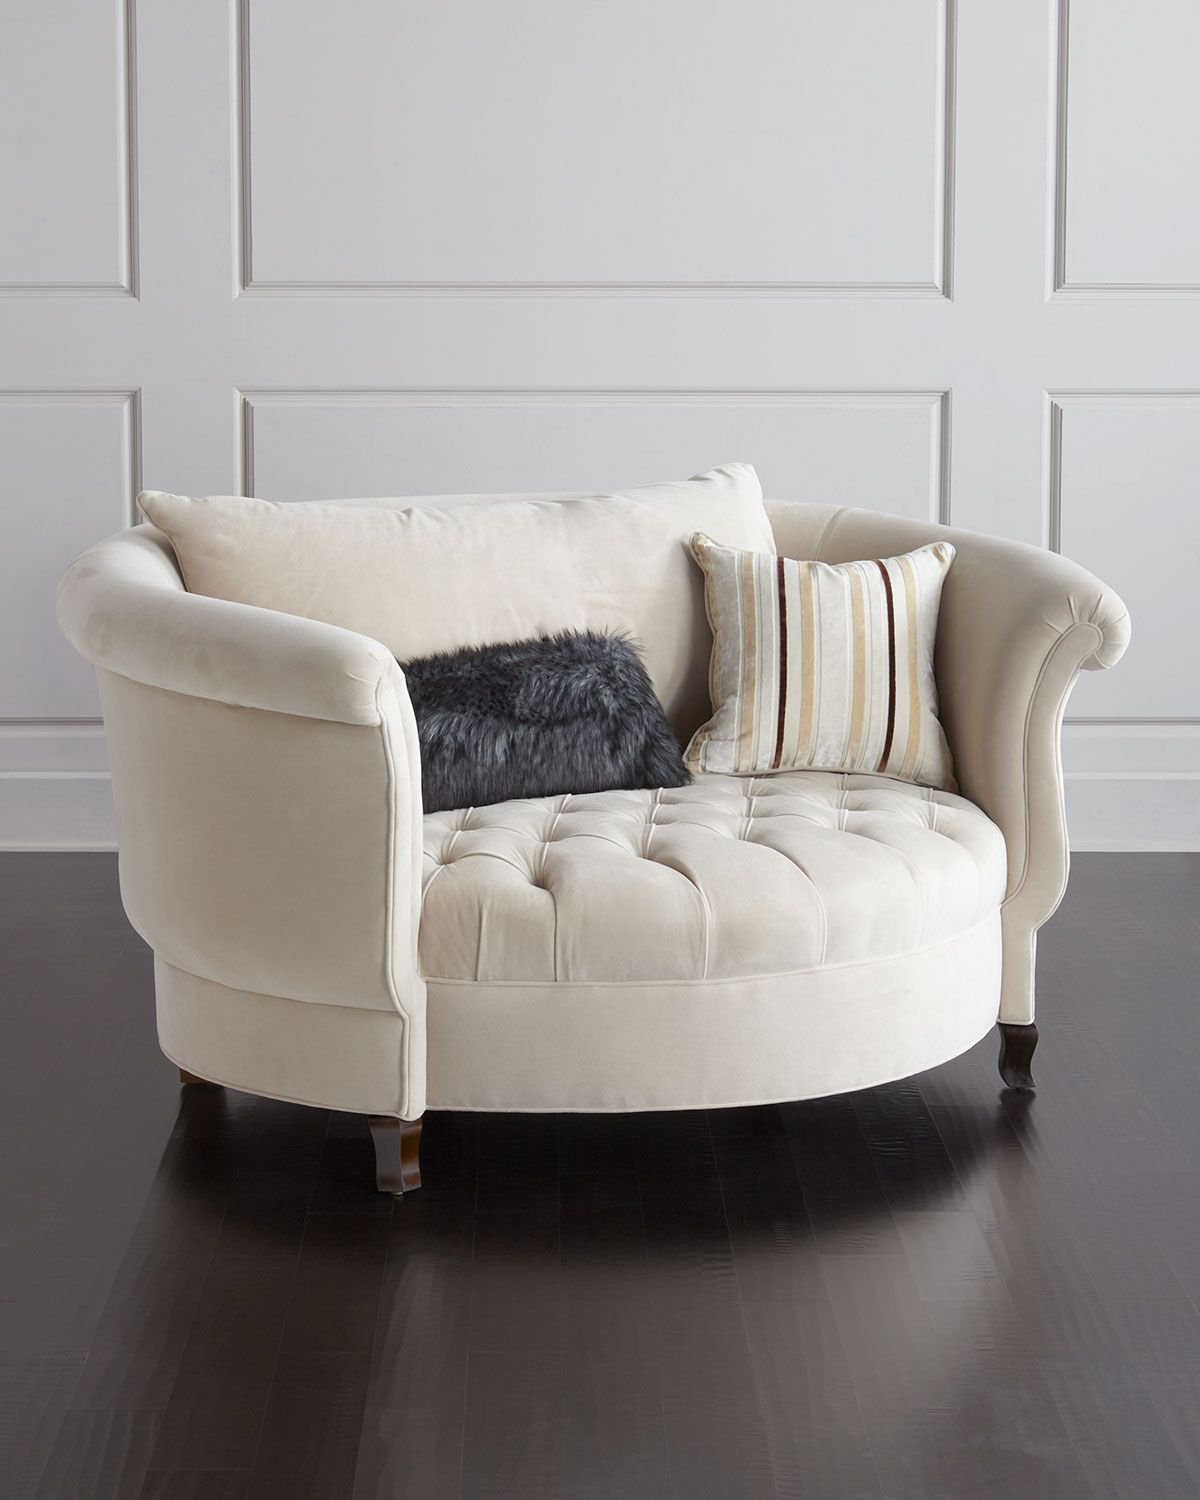 Harlow Ivory Cuddle Chair | Cuddle chair and House